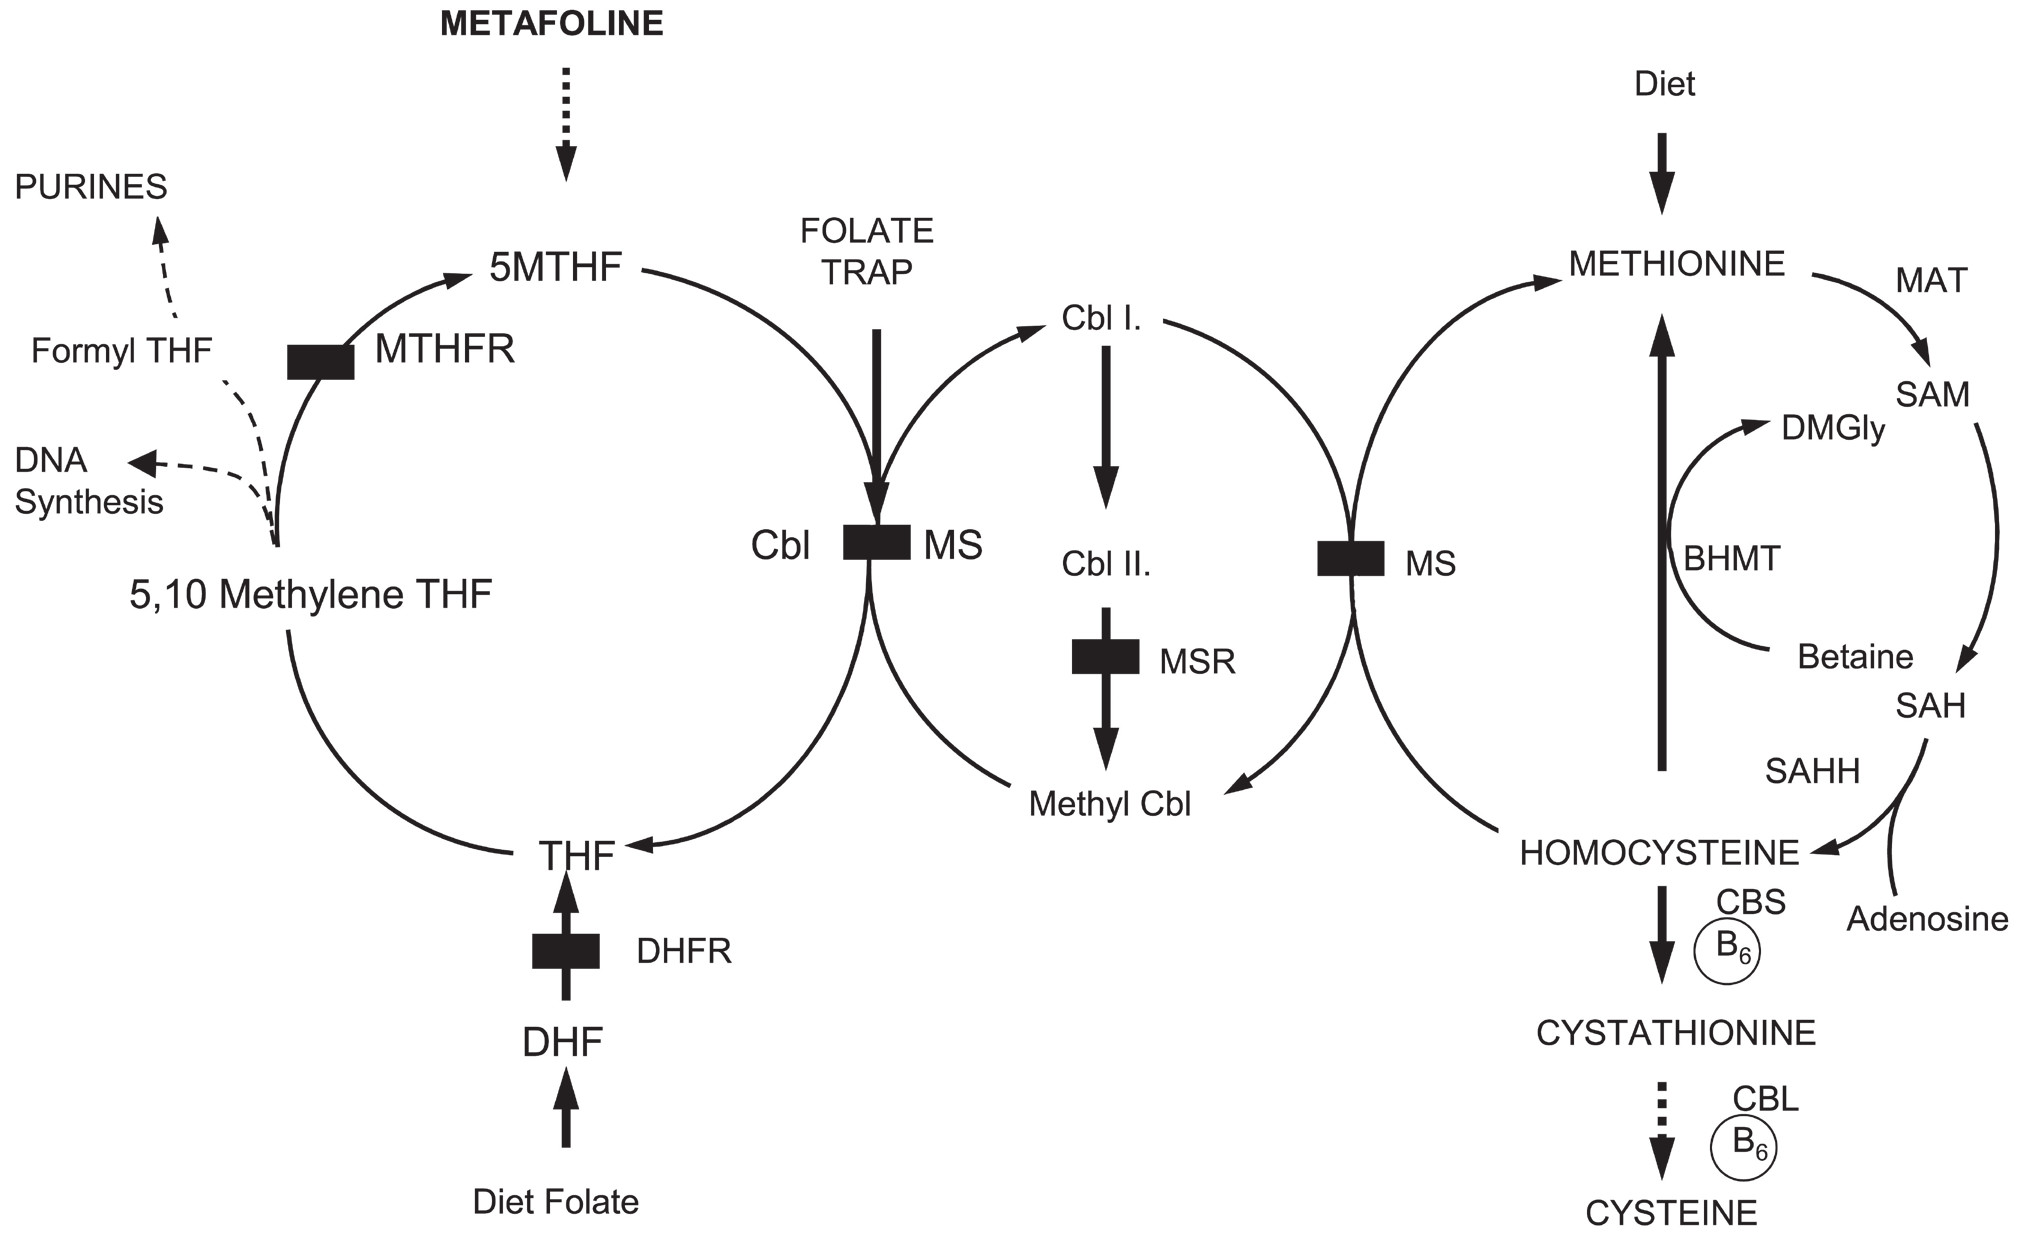 Fig. 1. Metabolic scheme of homocystein methylation in human.